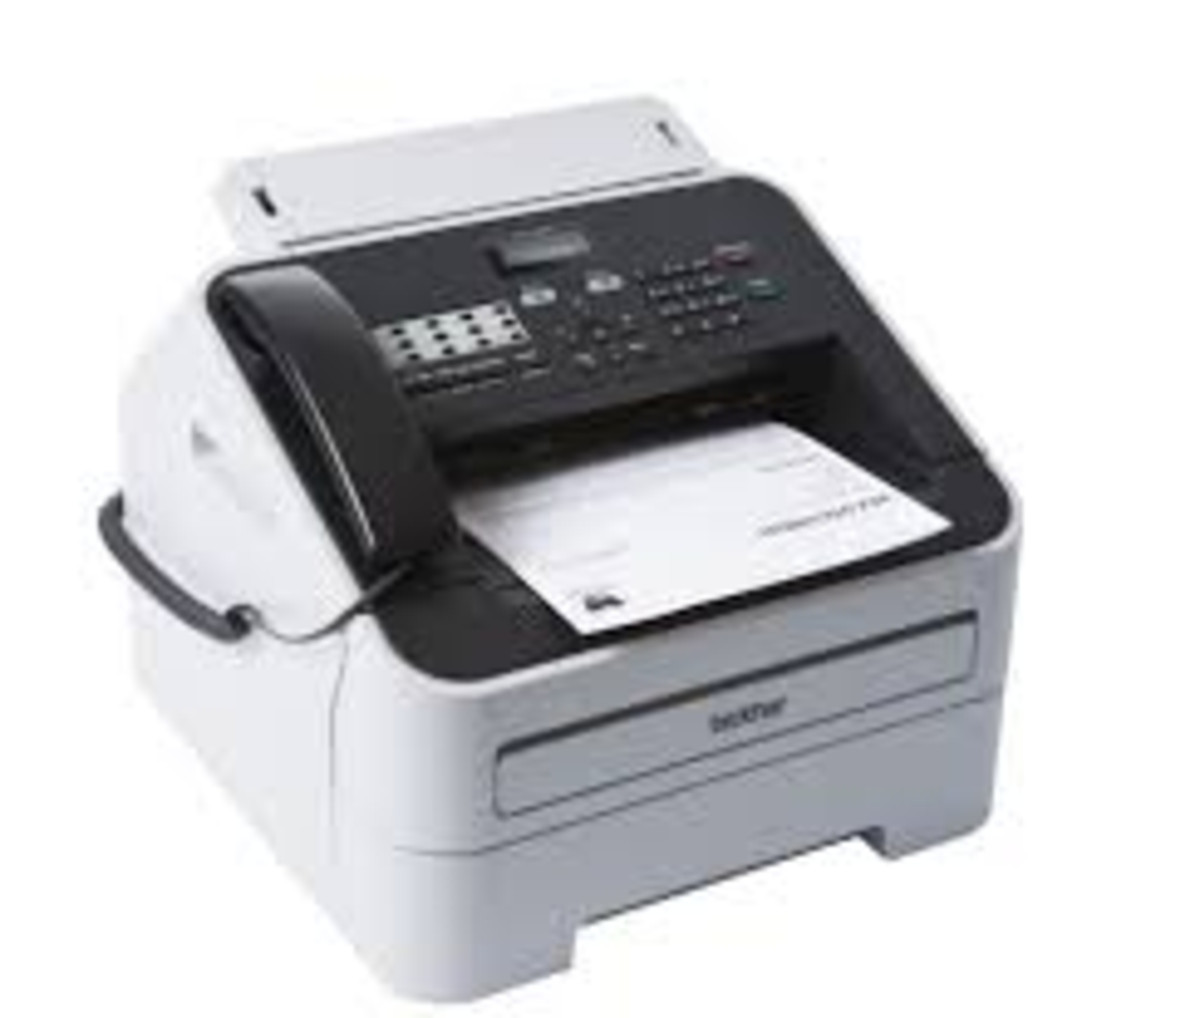 Brother FAX-2840 Fax Machine